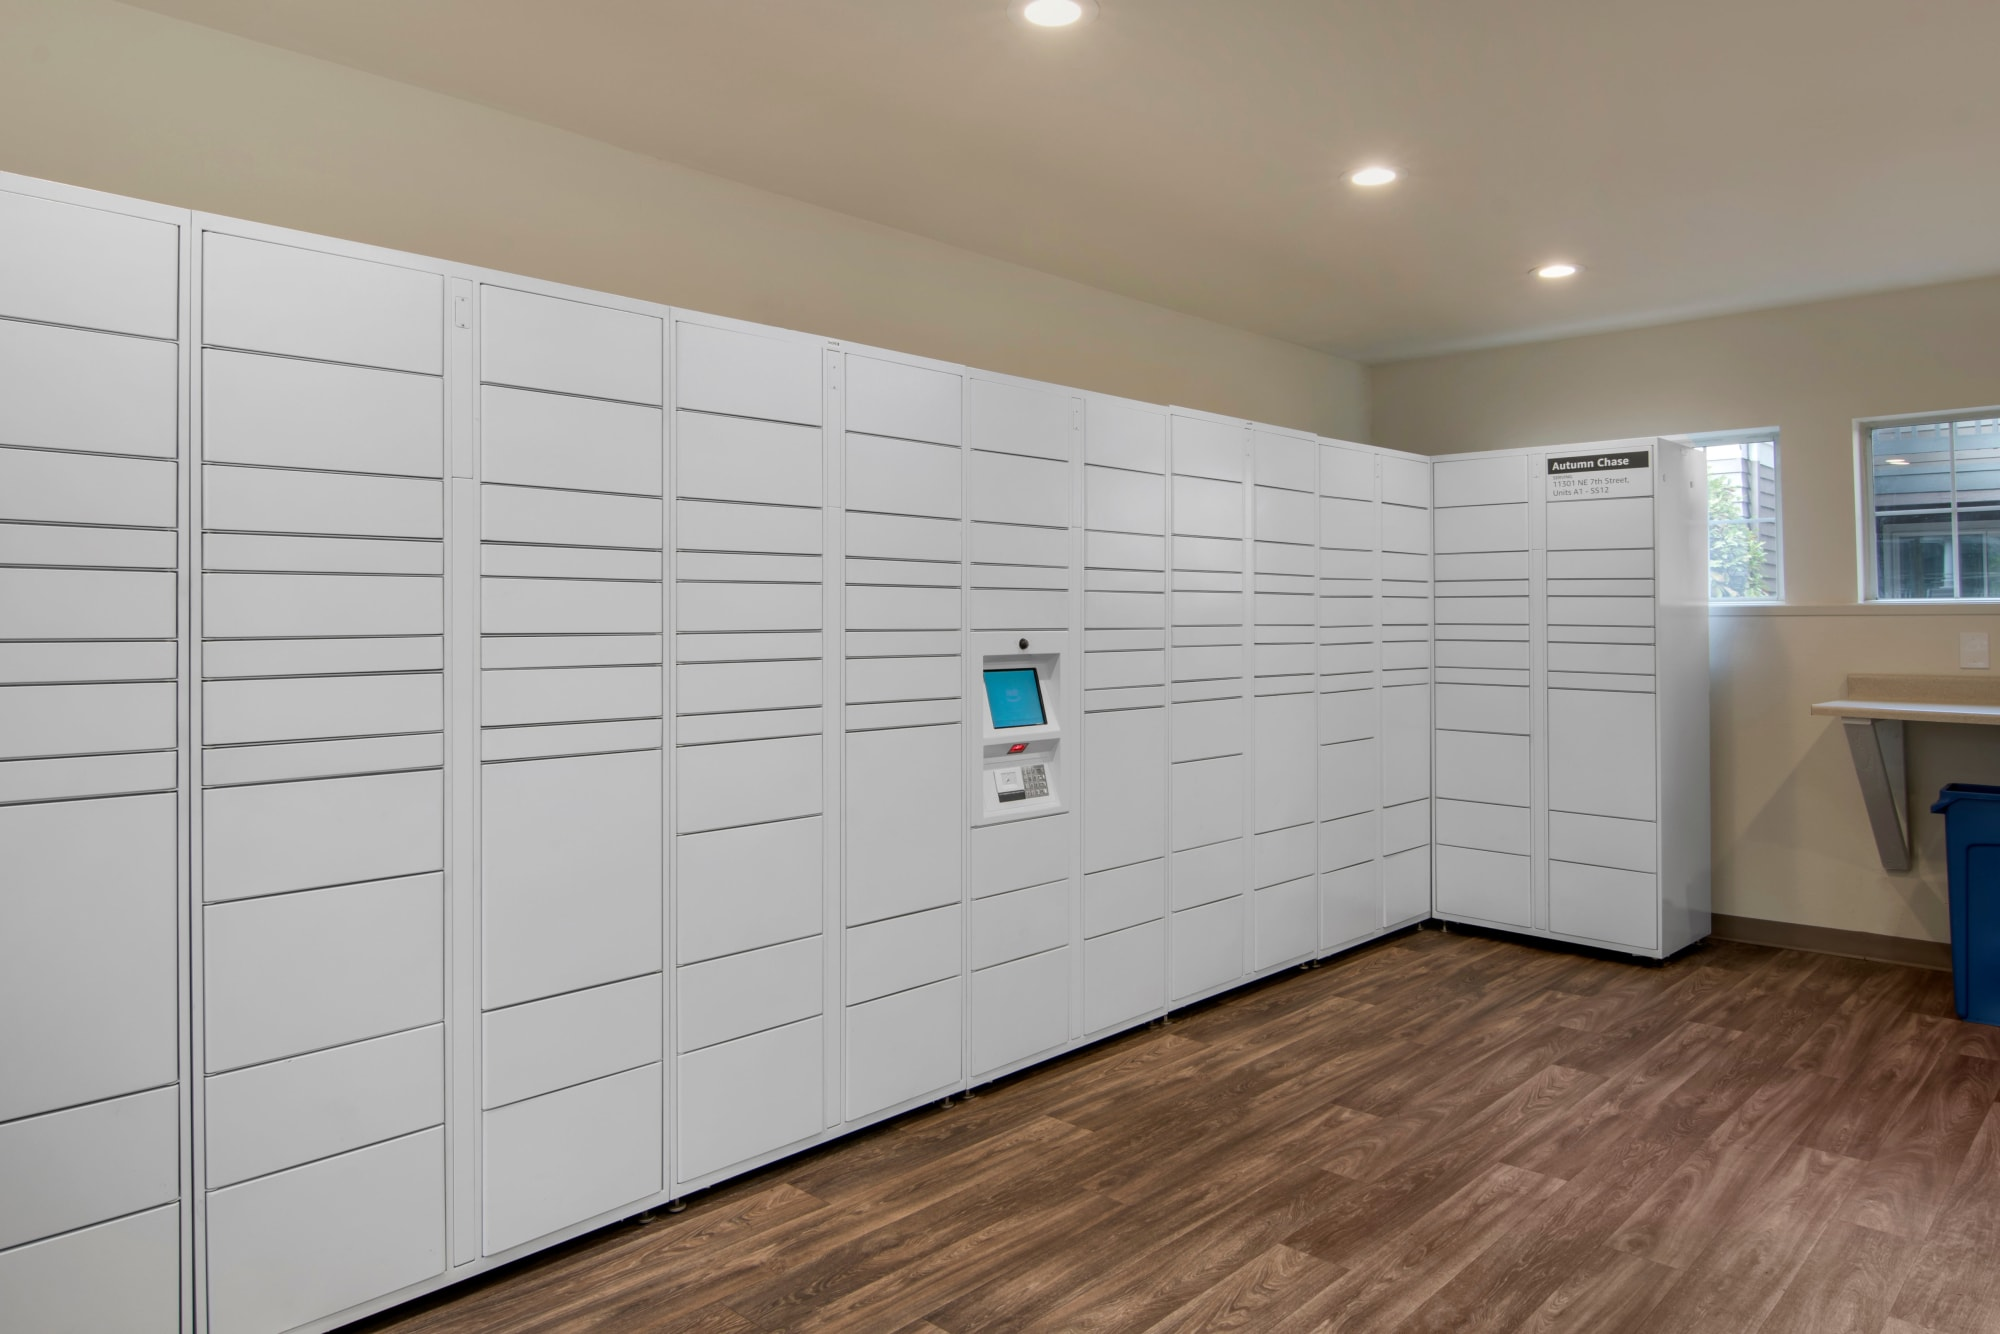 24-hour package lockers with Amazon hub at Autumn Chase Apartments in Vancouver, Washington